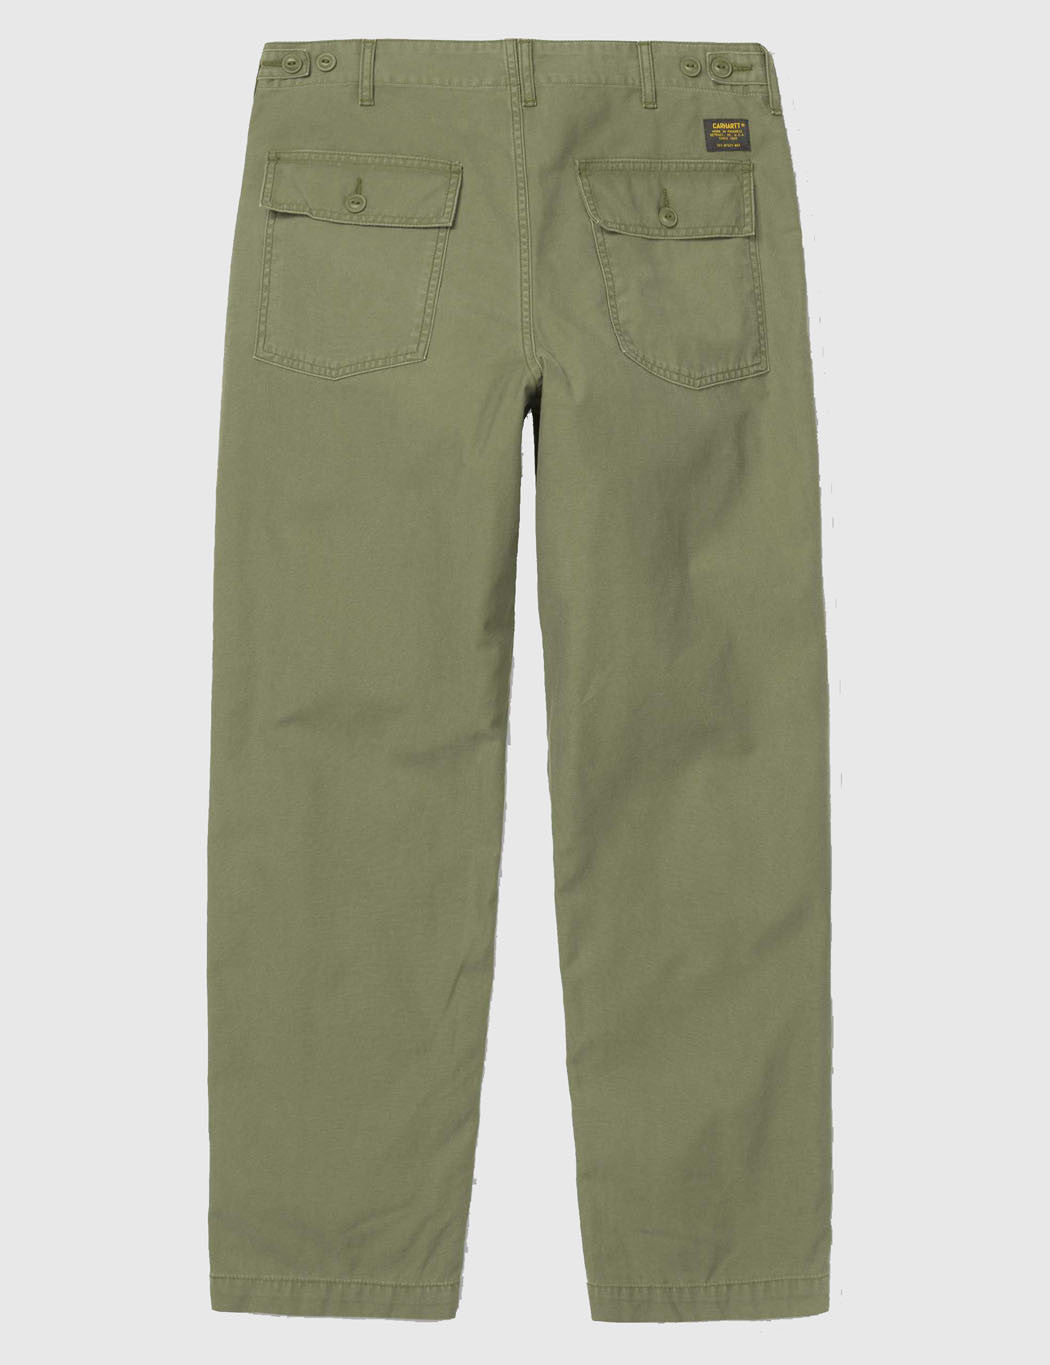 Carhartt Fatigue Pant (Stone Washed) - Dollar Green